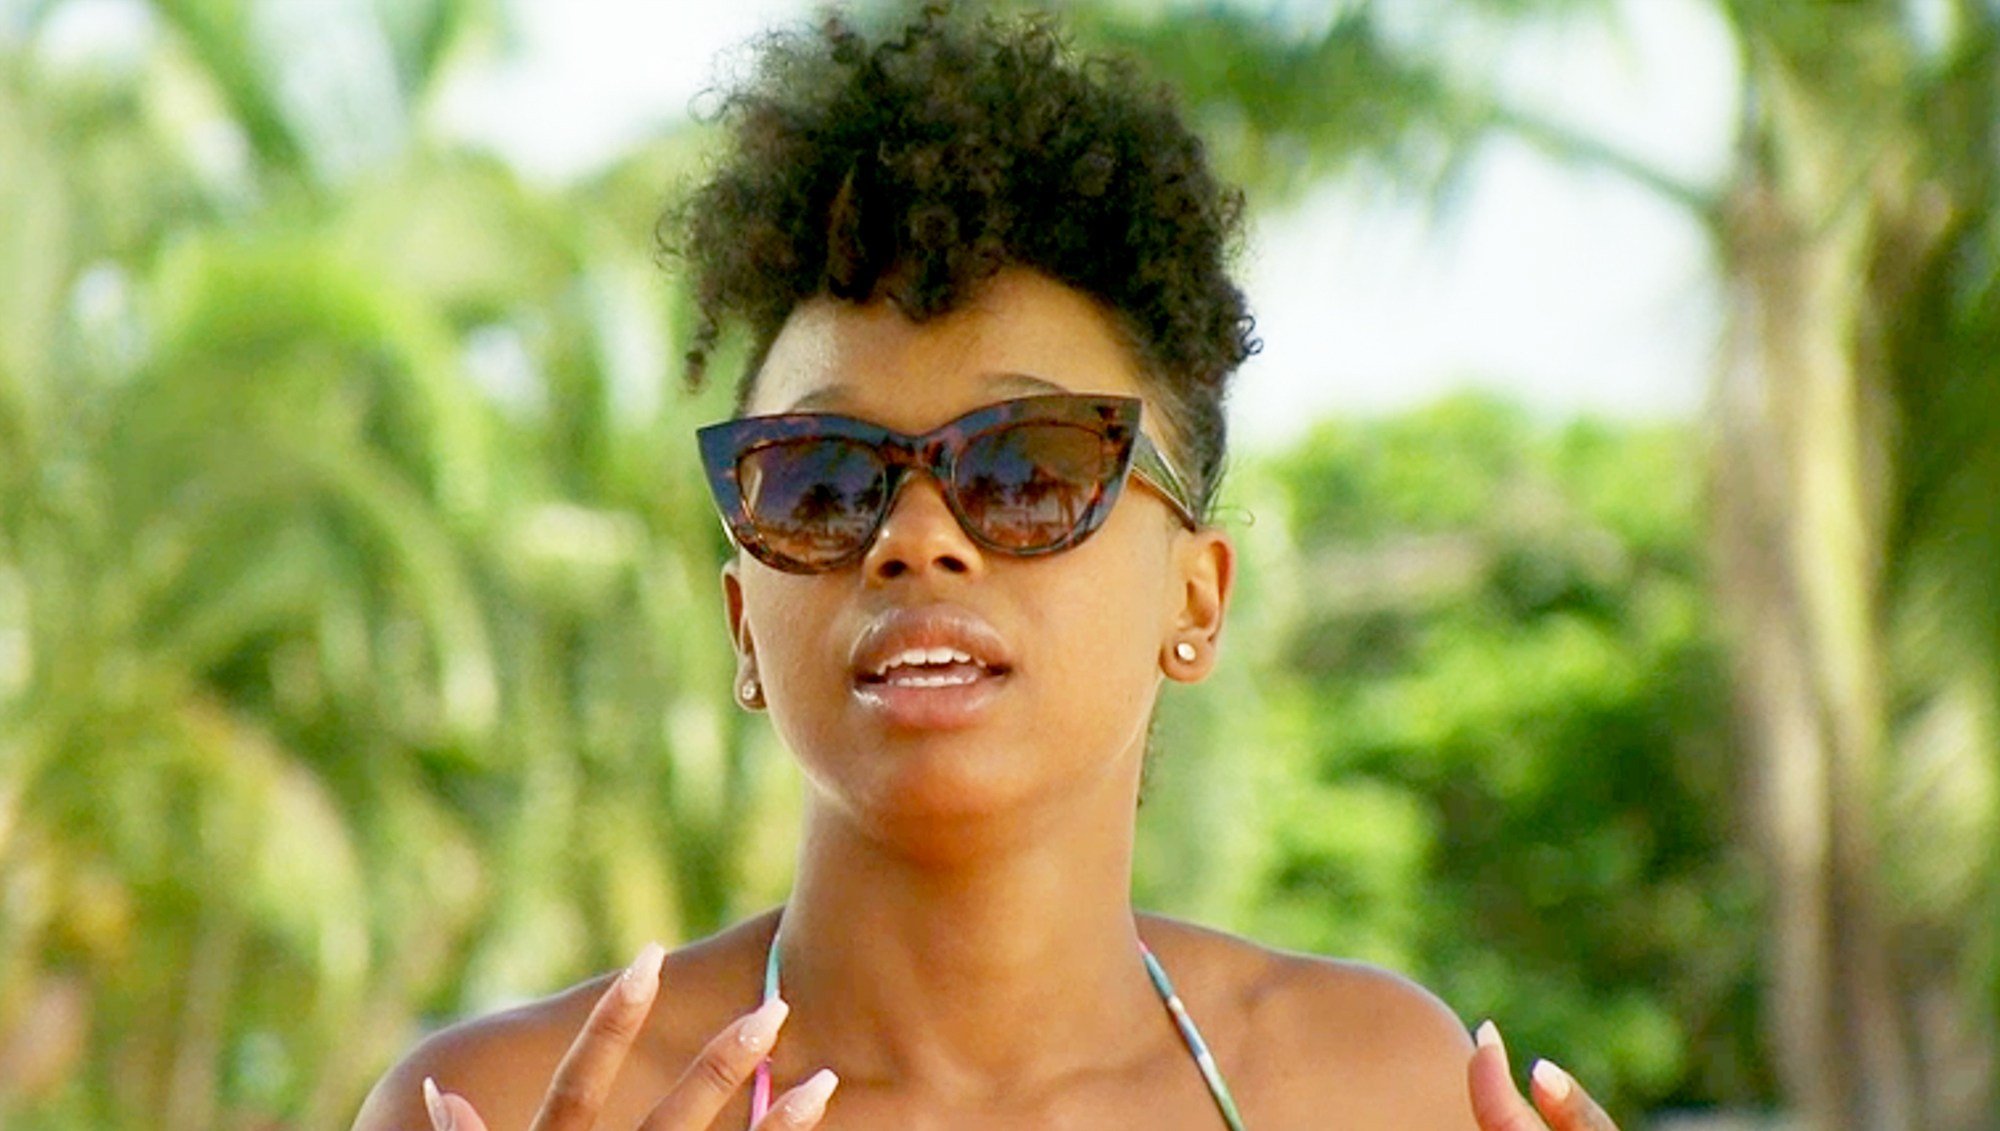 Shawniece Jackson on 'Married at First Sight'